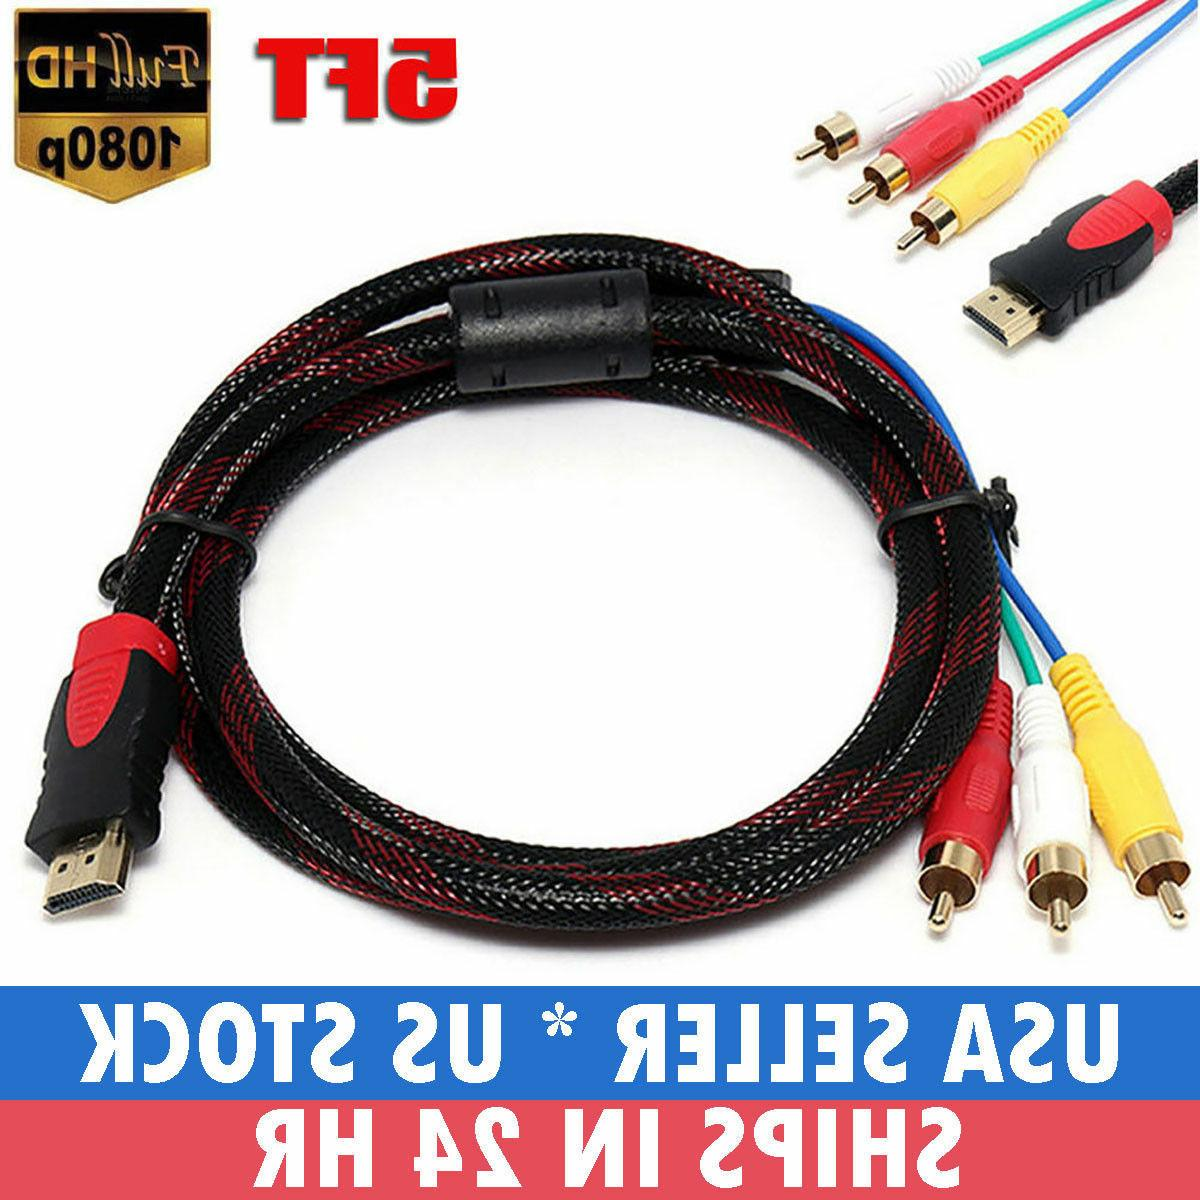 hdmi to 3 av audio video 5